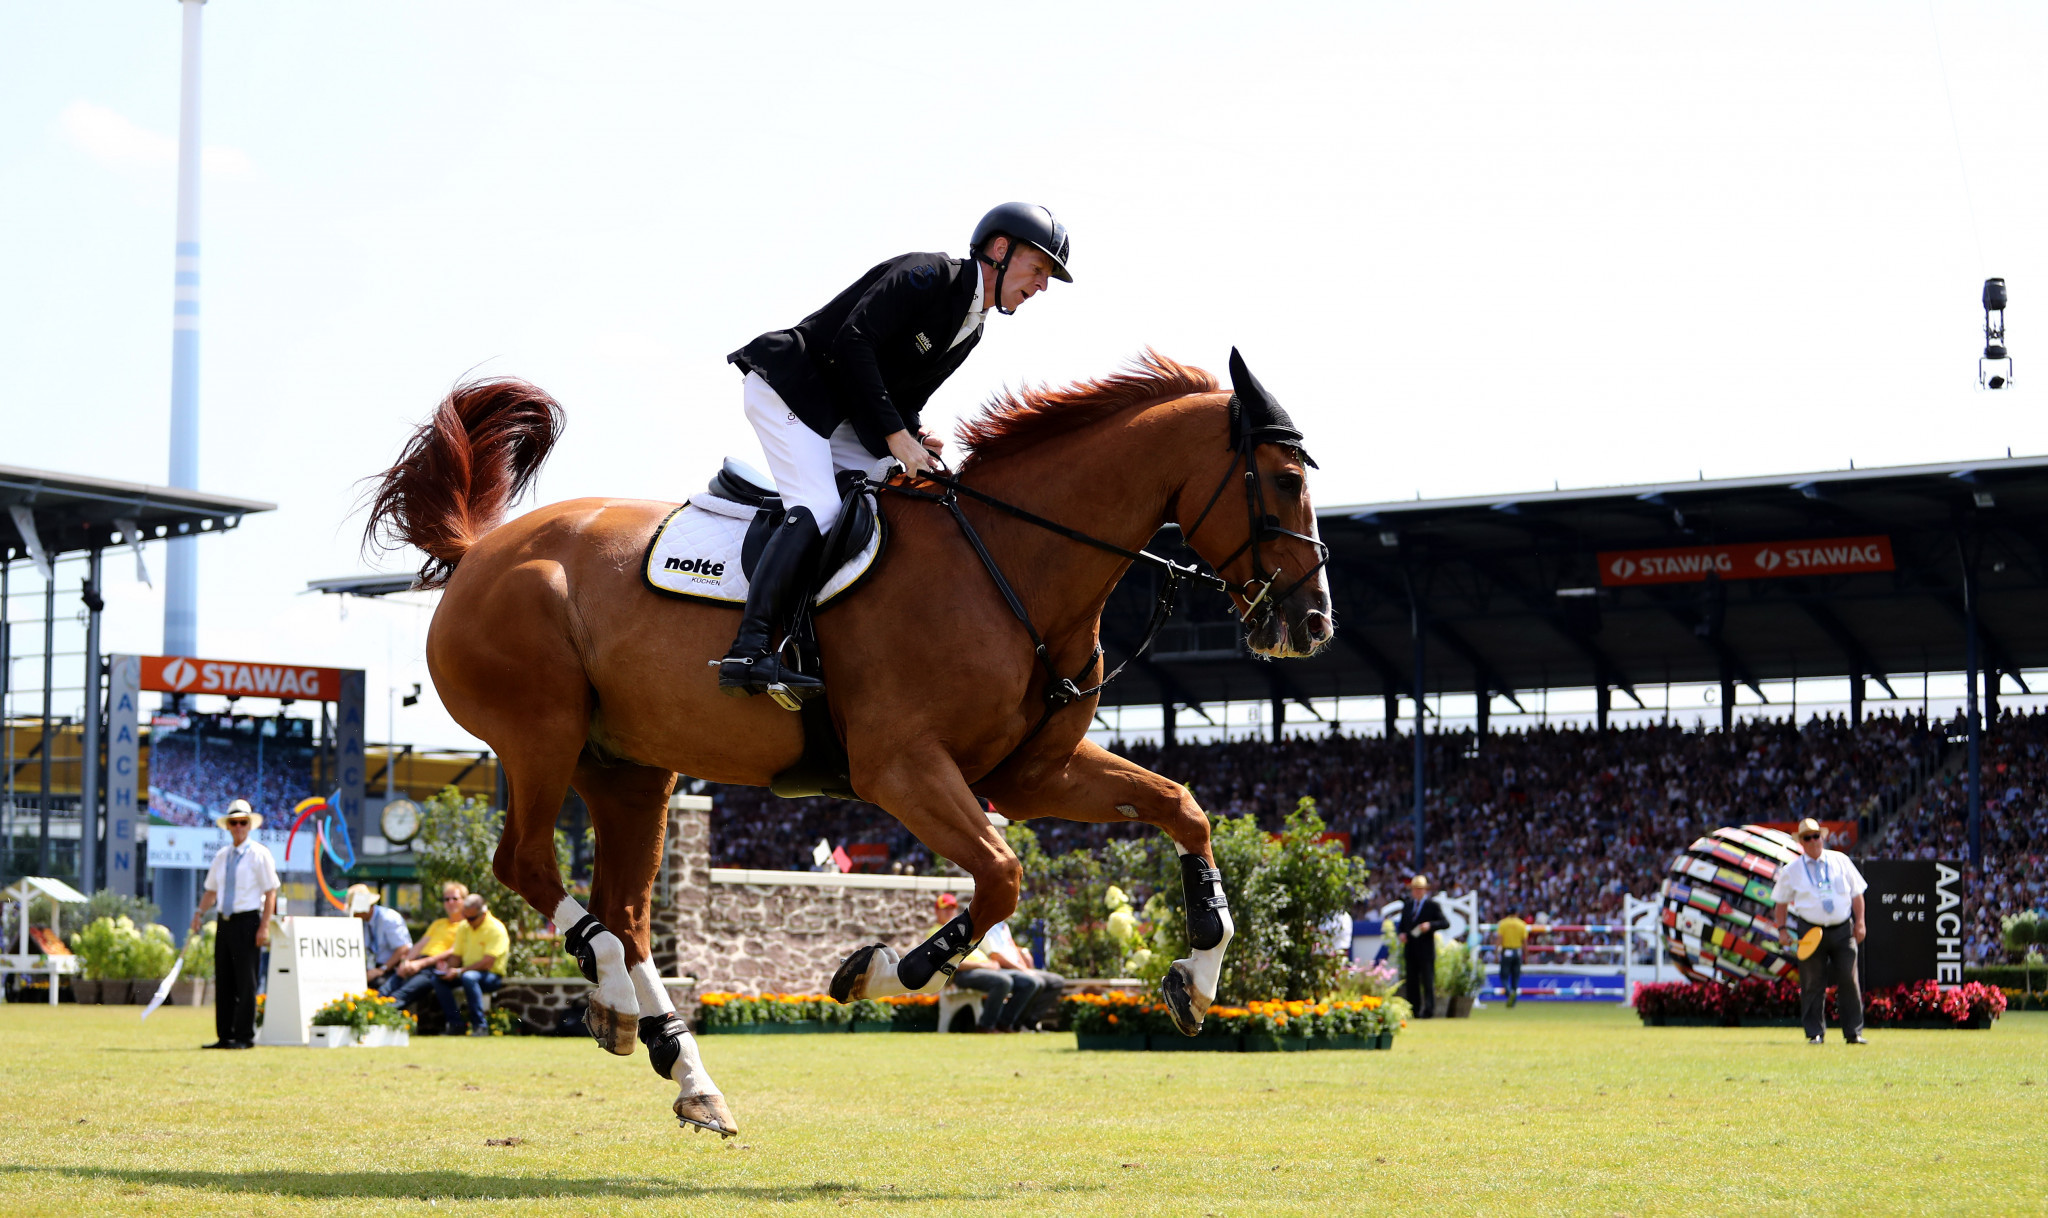 Germany wins Challenge Cup at FEI Jumping Nations Cup Final